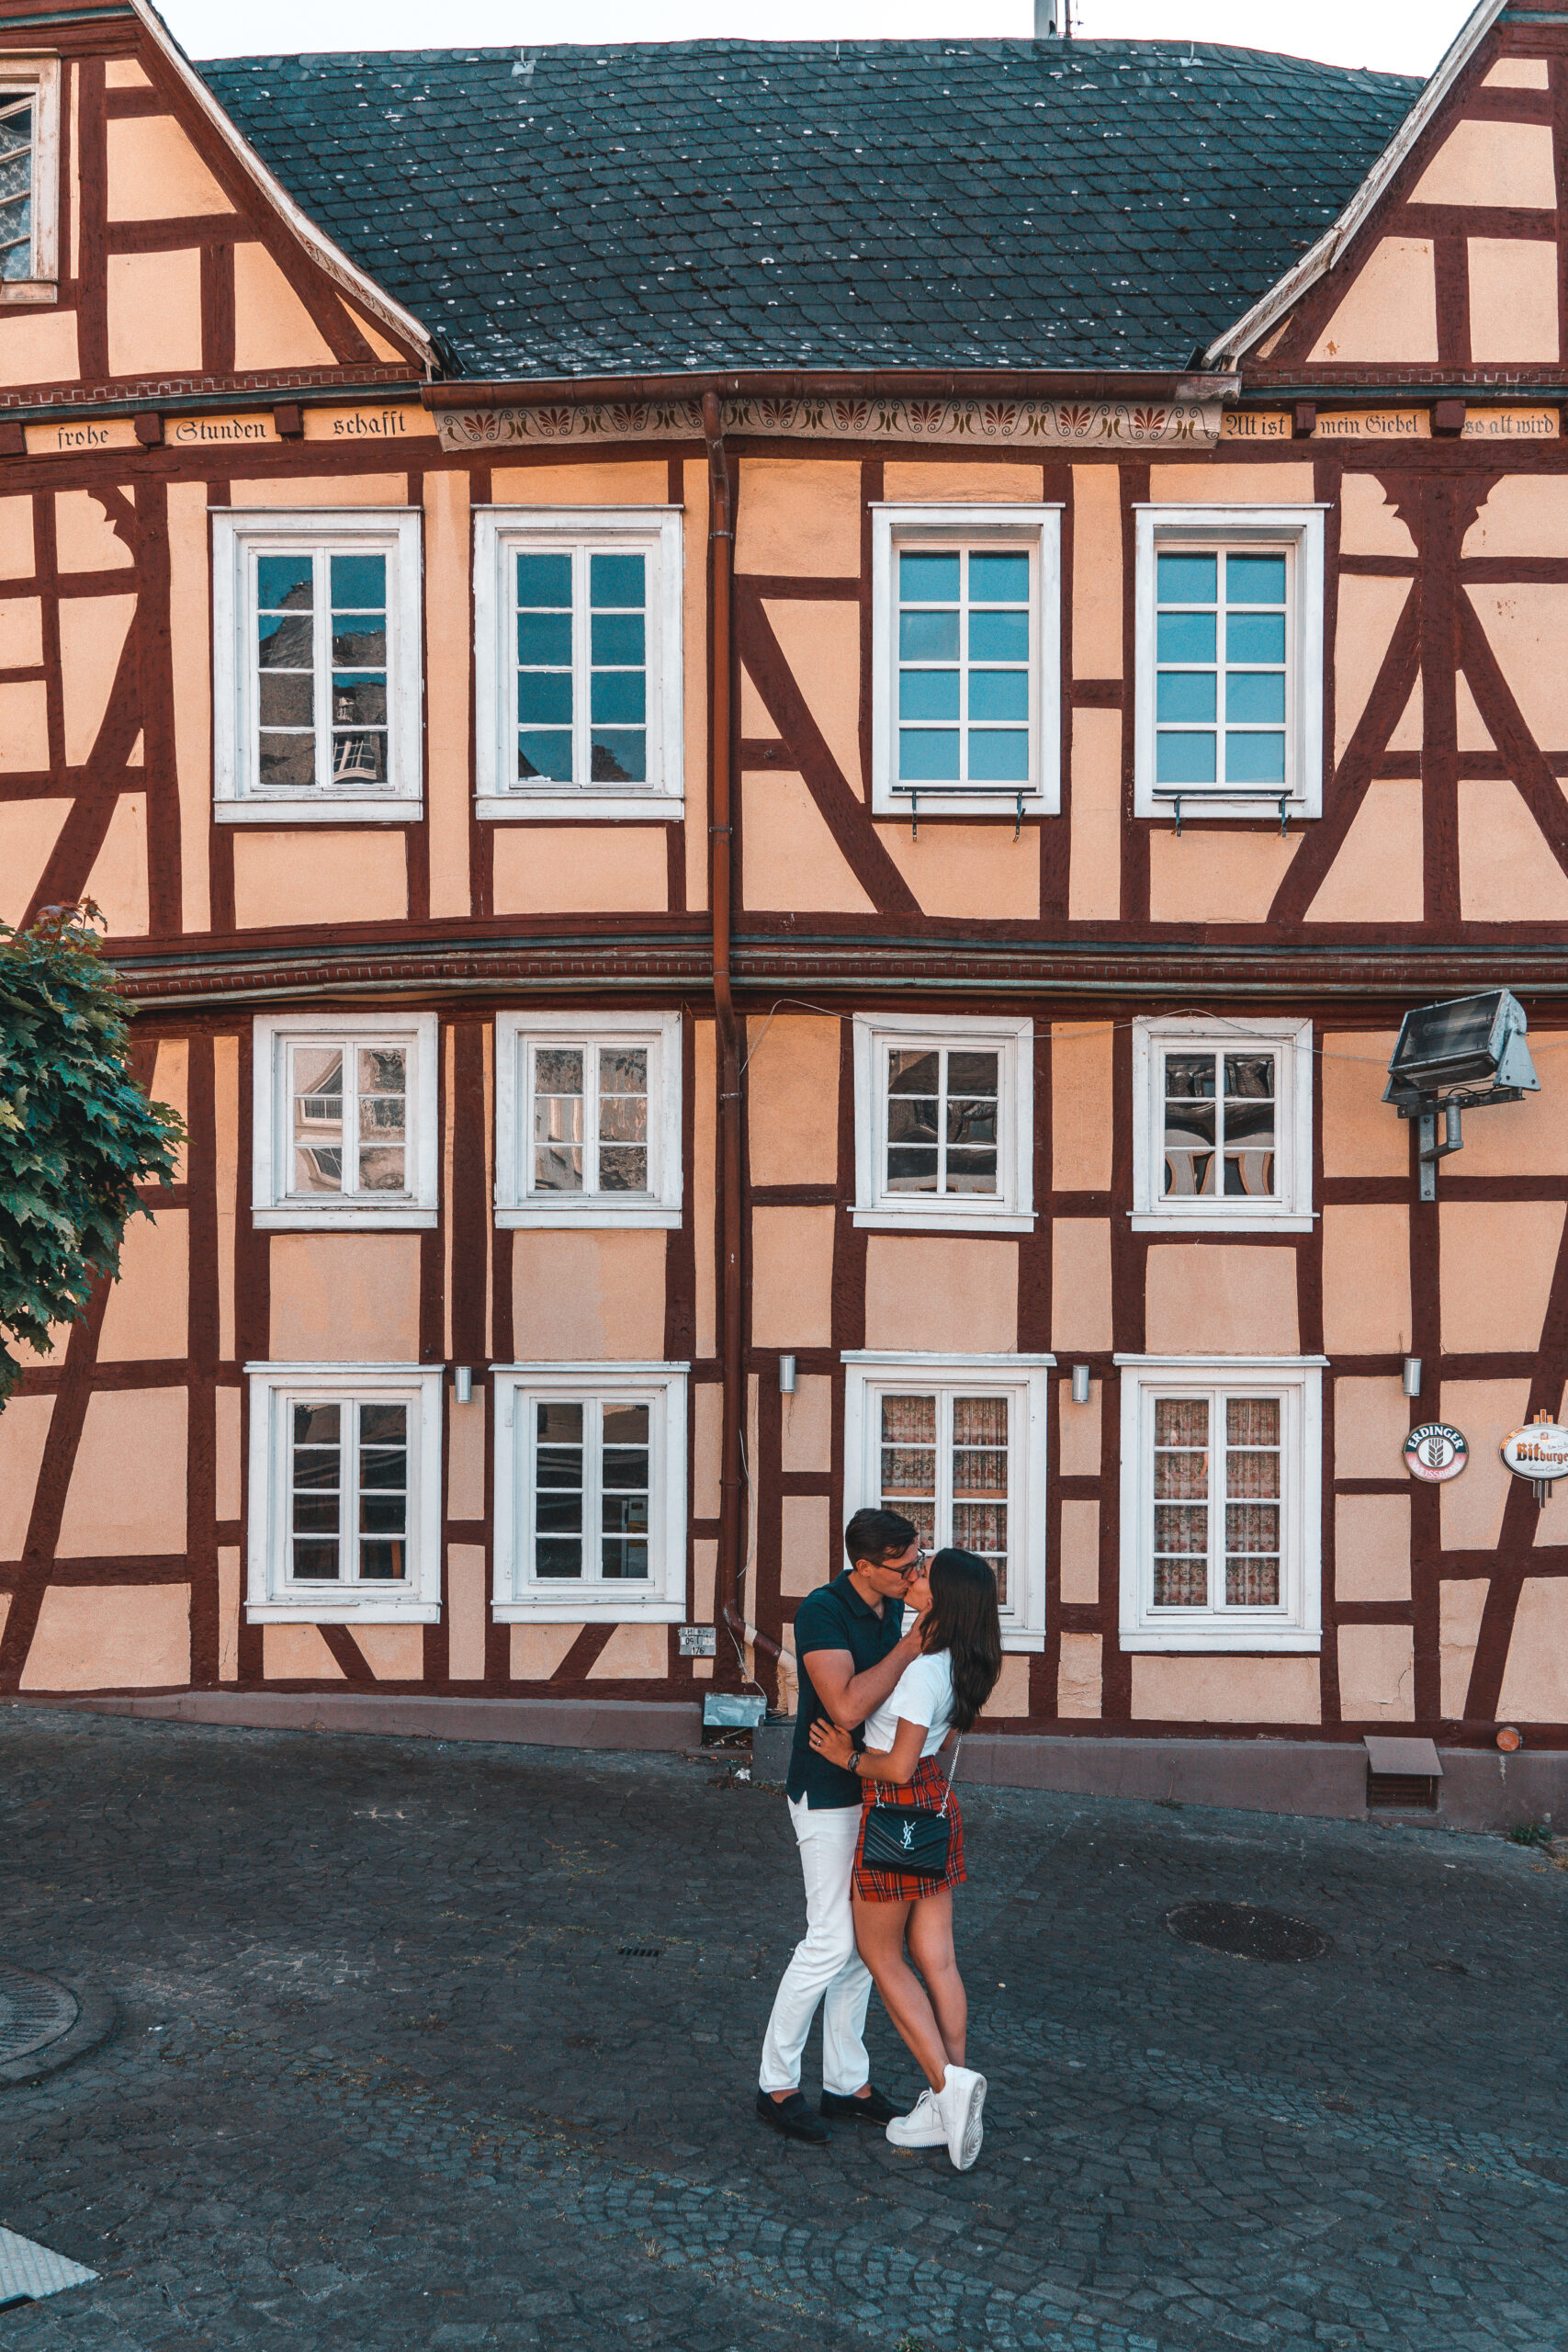 Linz am Rhein | Travel Guide for day trips from Cologne